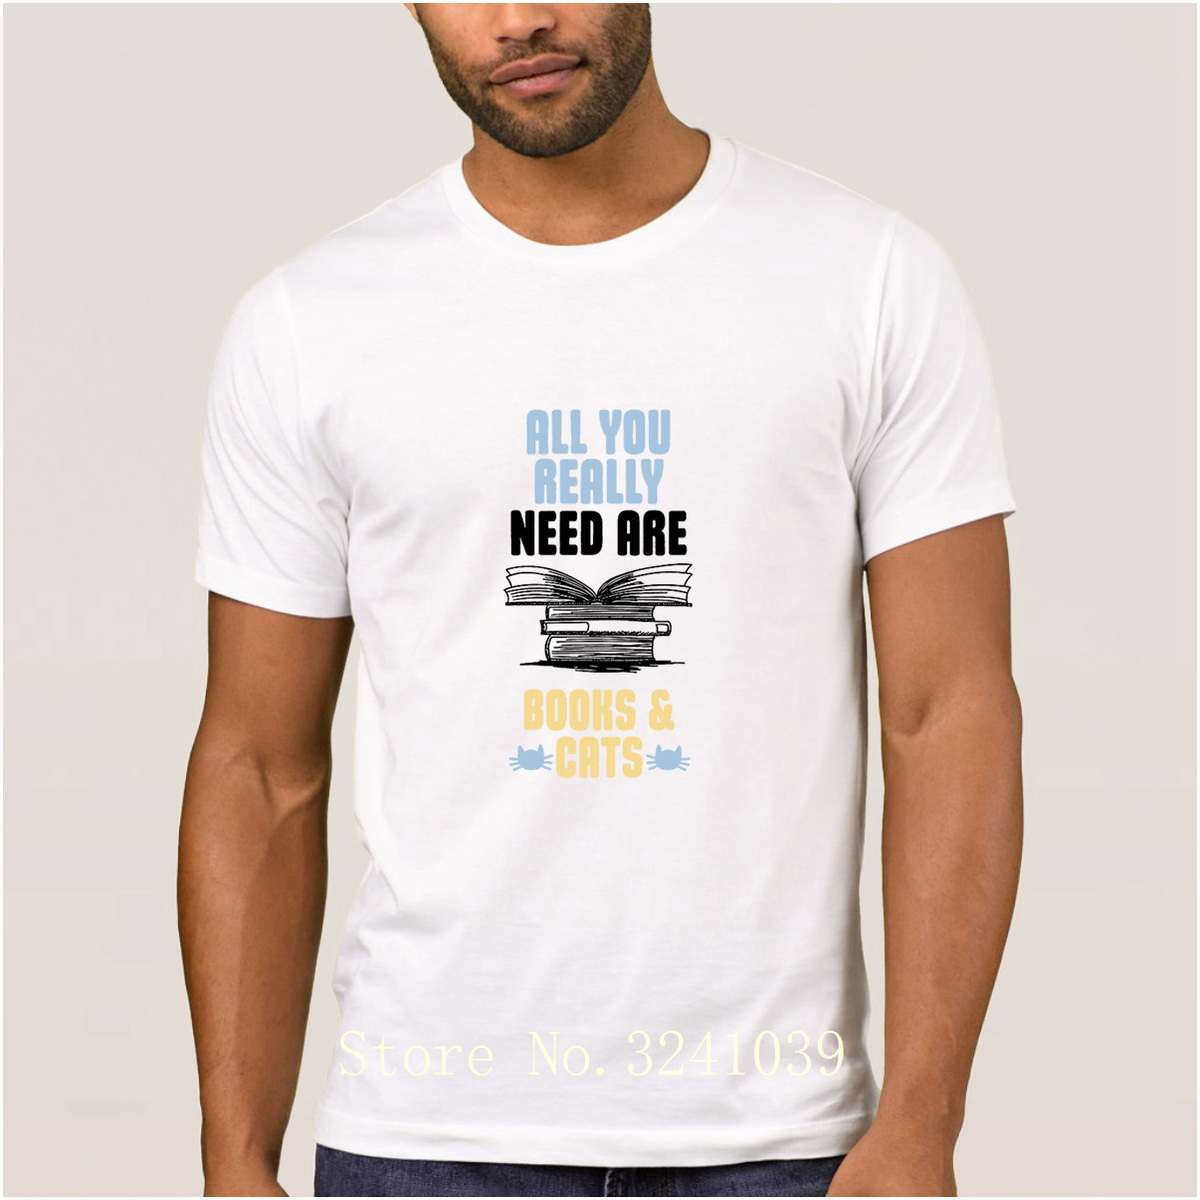 La Maxpa Casual all you really need are books amp catseed t shirt summer Graphic t-shirt men large Euro Size S-3xl men's tshirt